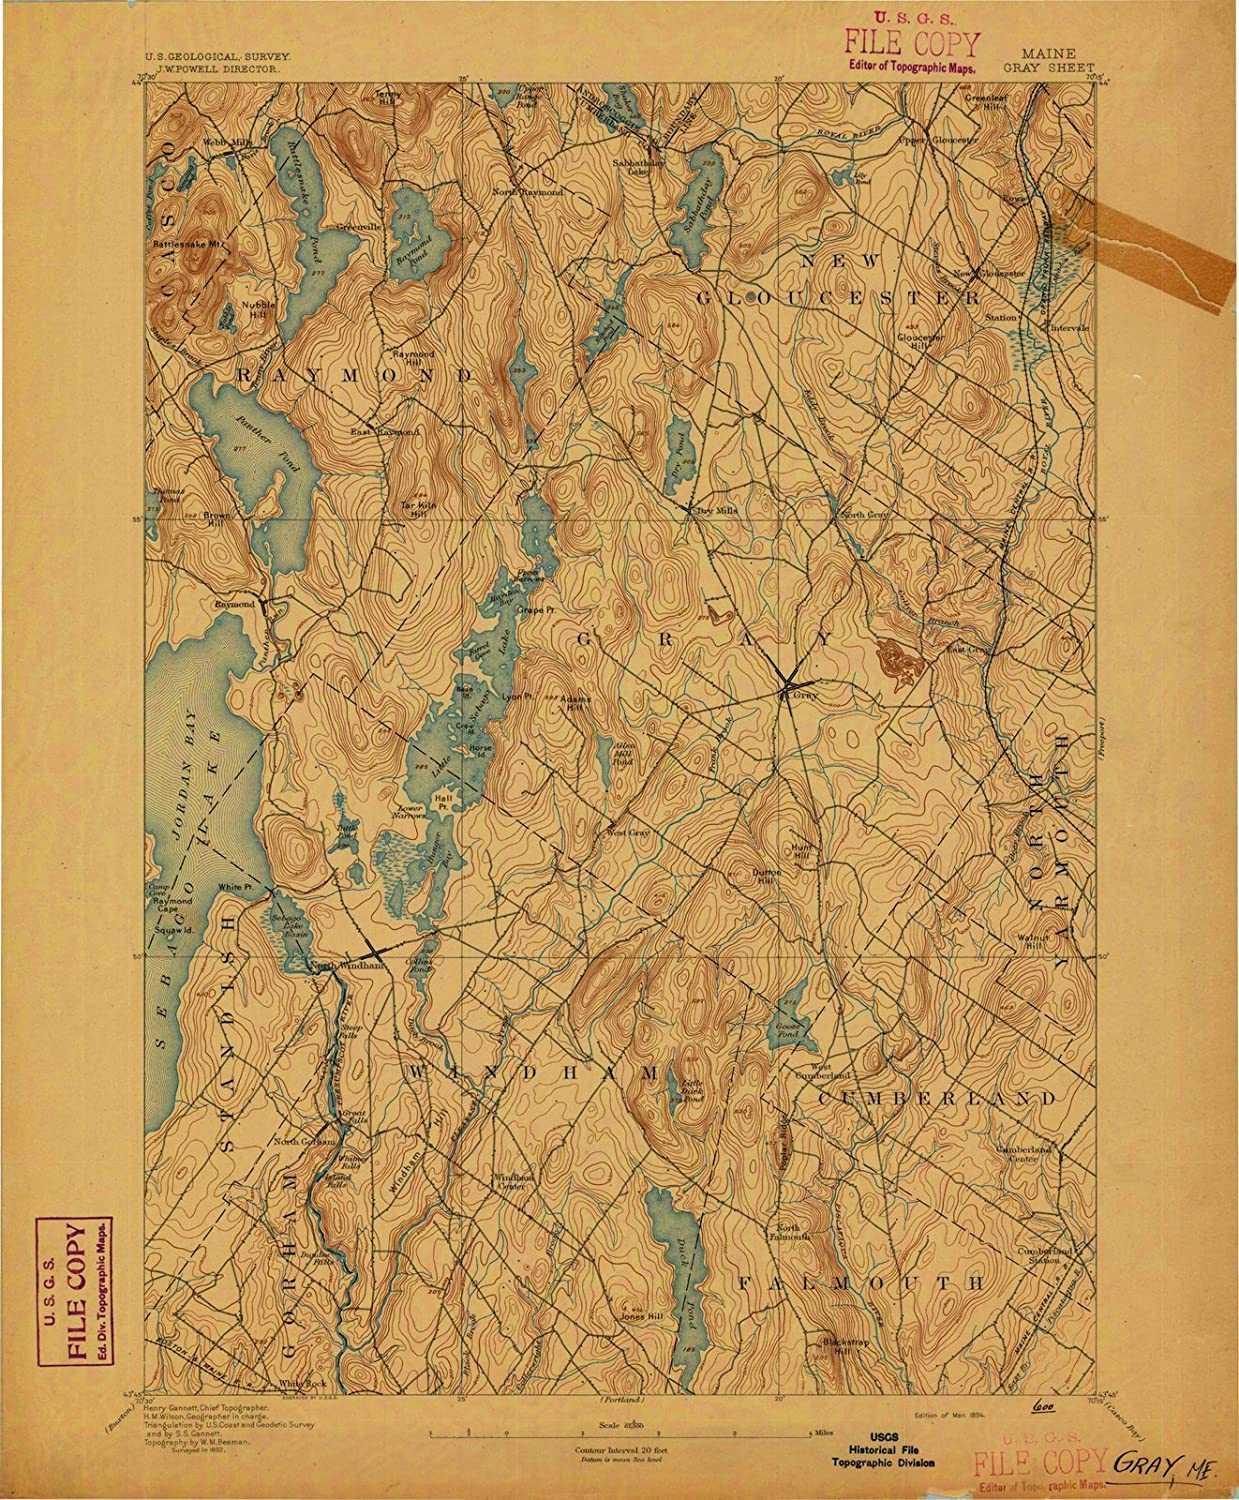 Maine Maps 1894 Gray Me Usgs Historical Topographic Wall Art 44in X 55in Posters Prints